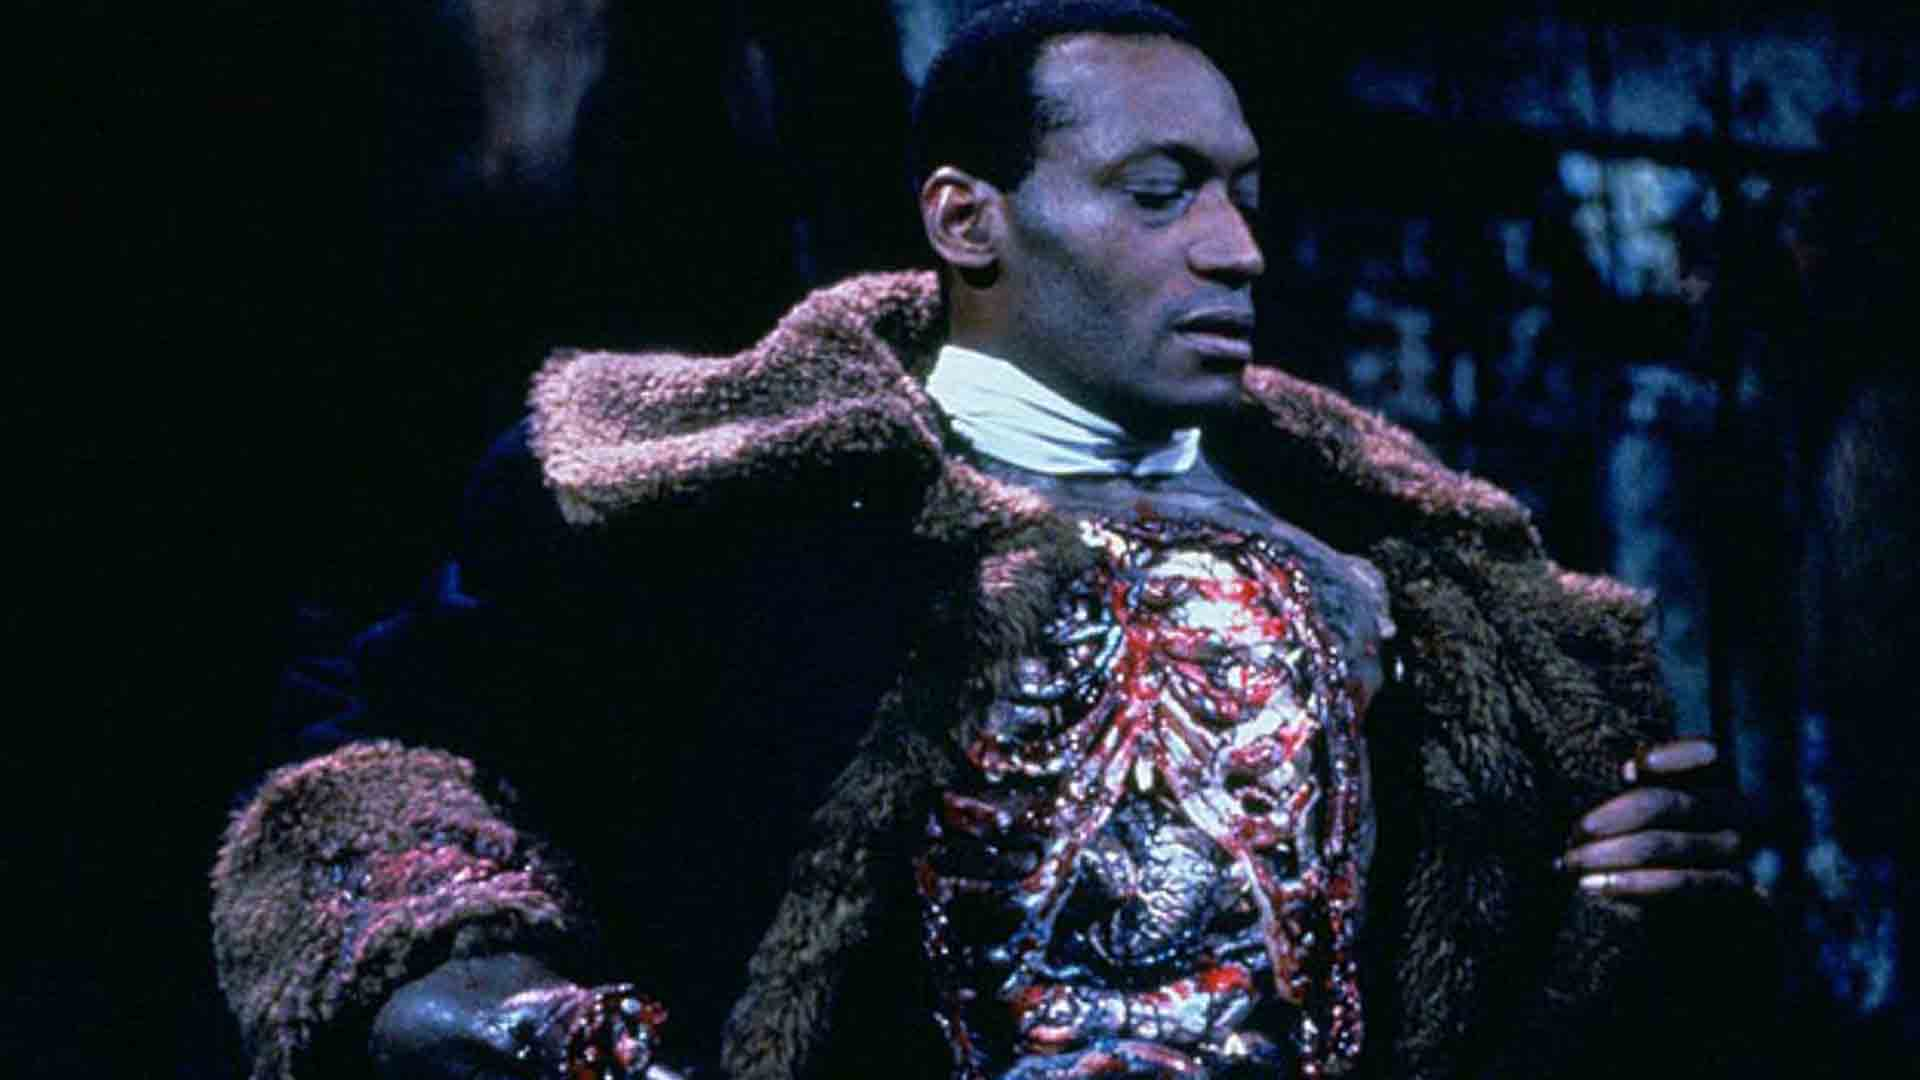 Tony Todd as my Kennedy character in Candyman